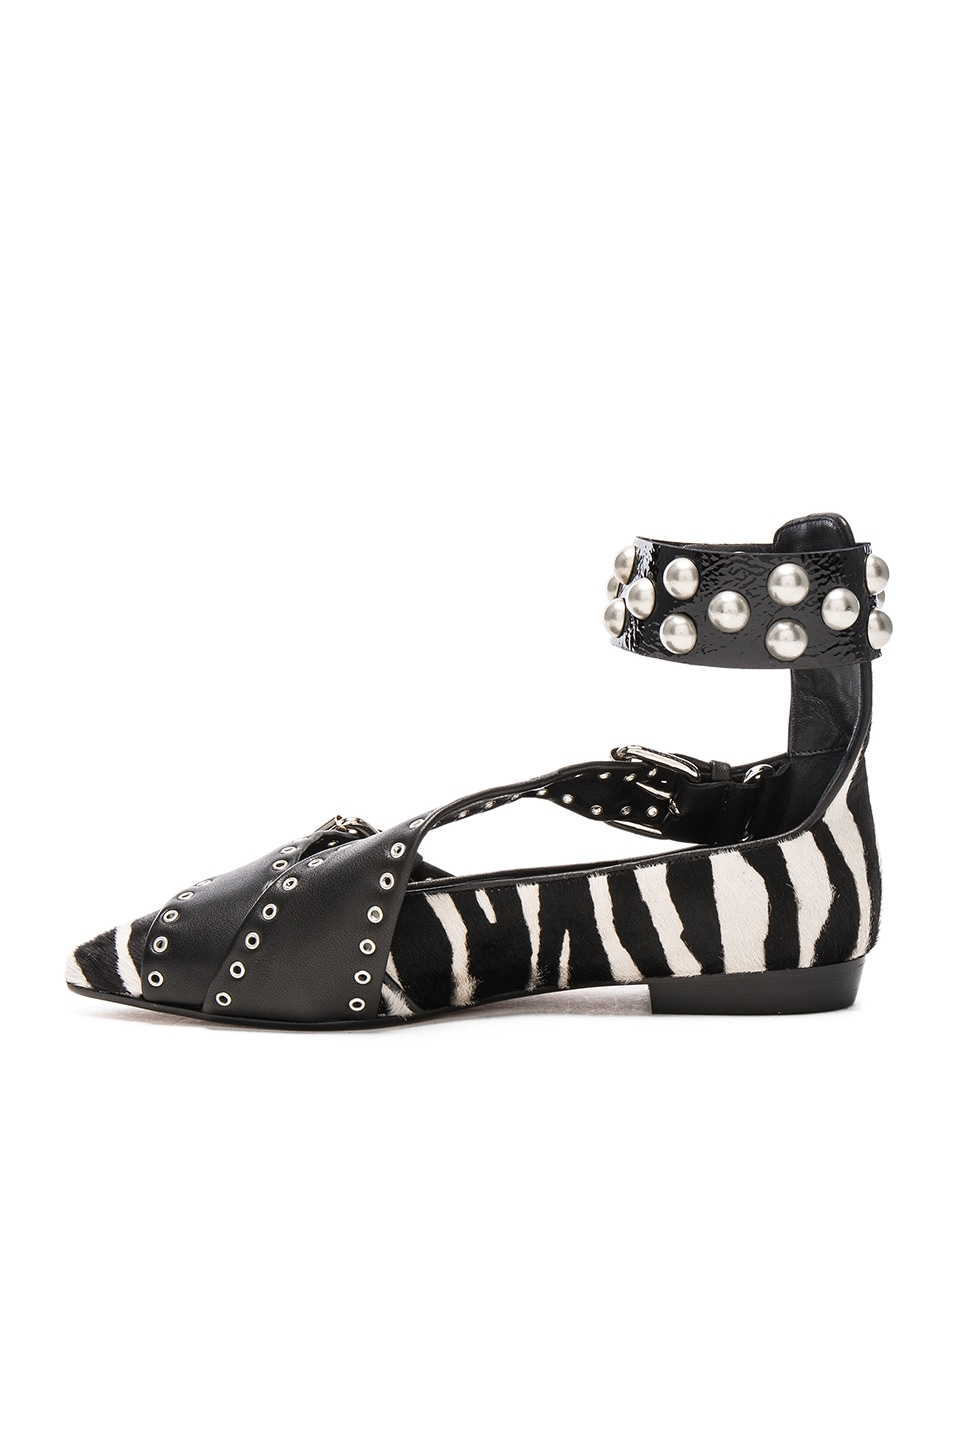 Image 5 of Isabel Marant Calf Hair Linzy Eyelet Flats in Black & White